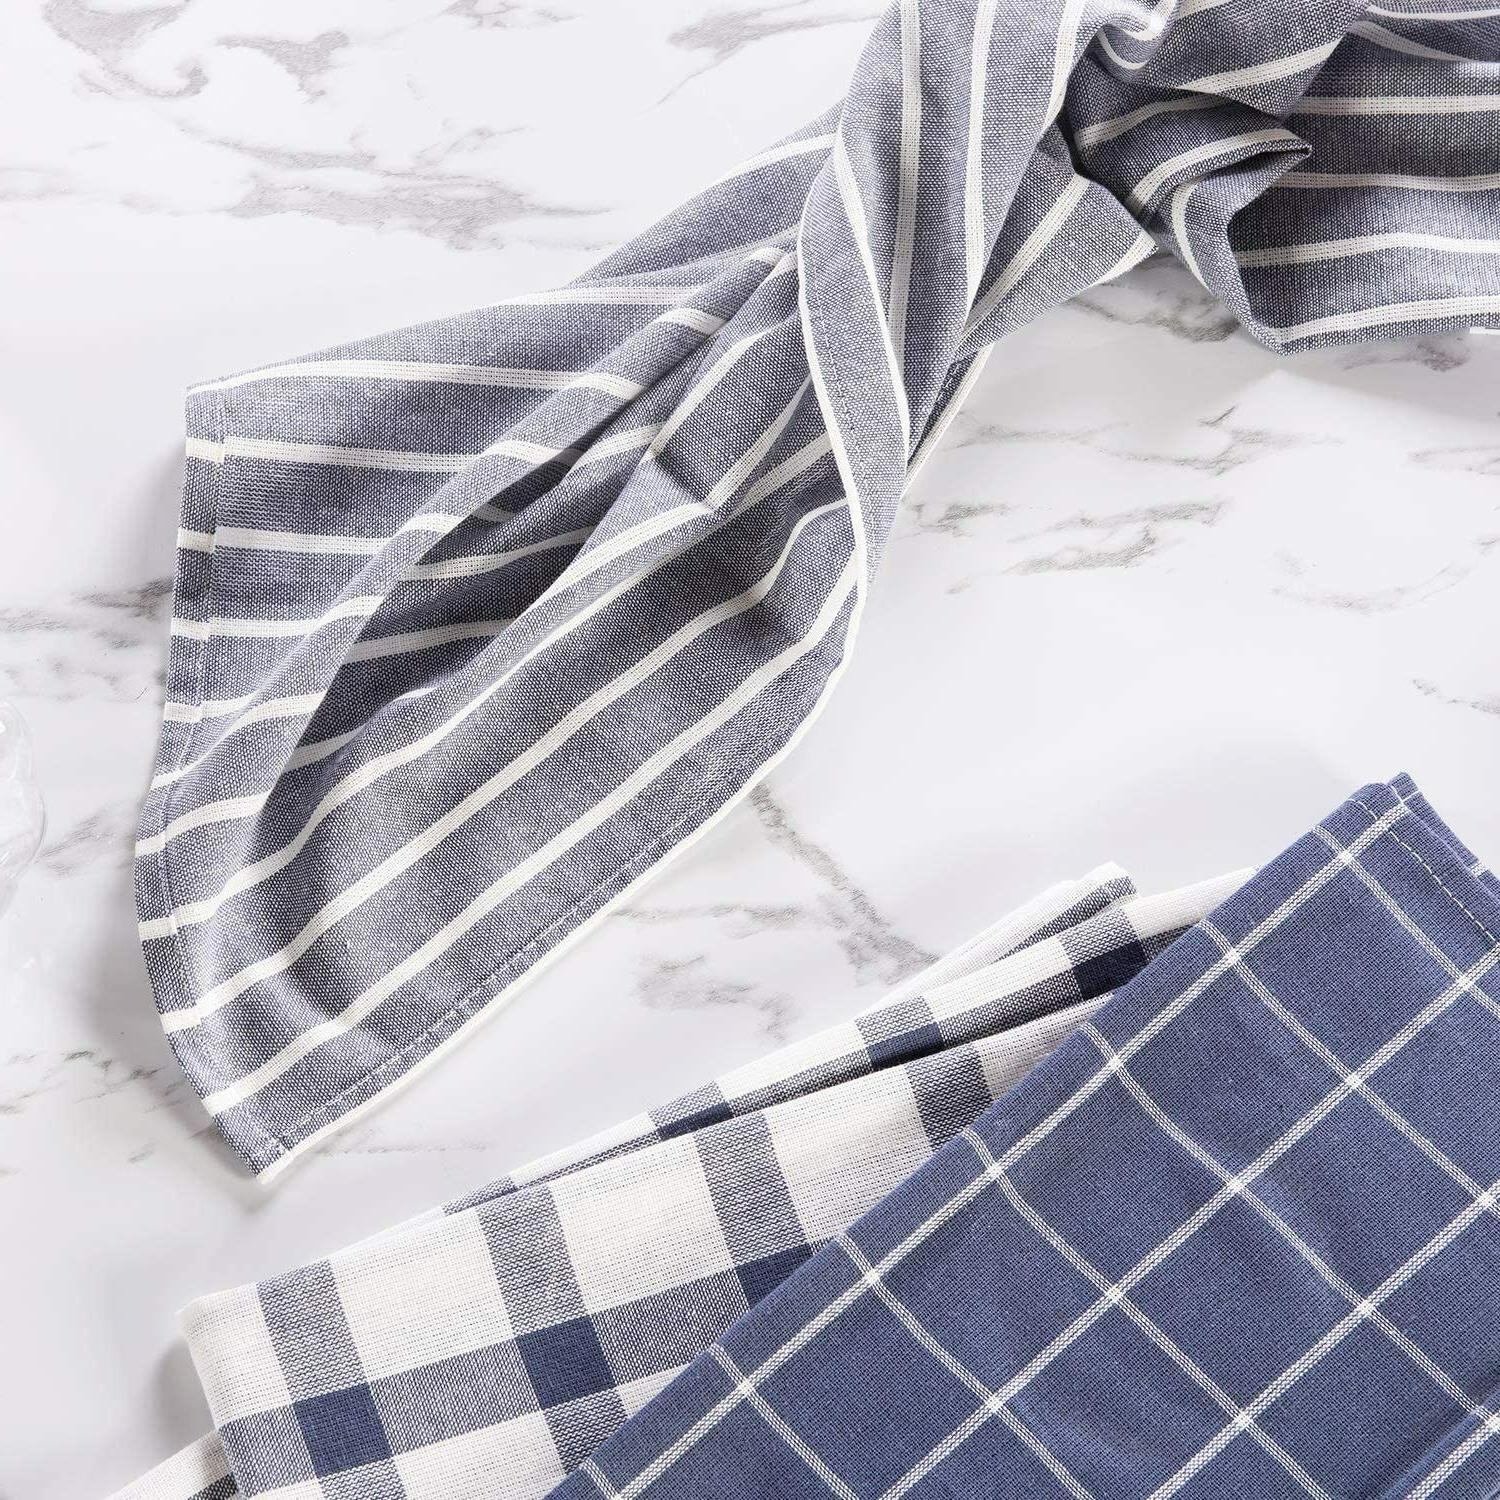 5 Dish Cotton Towel For Cooking Baking